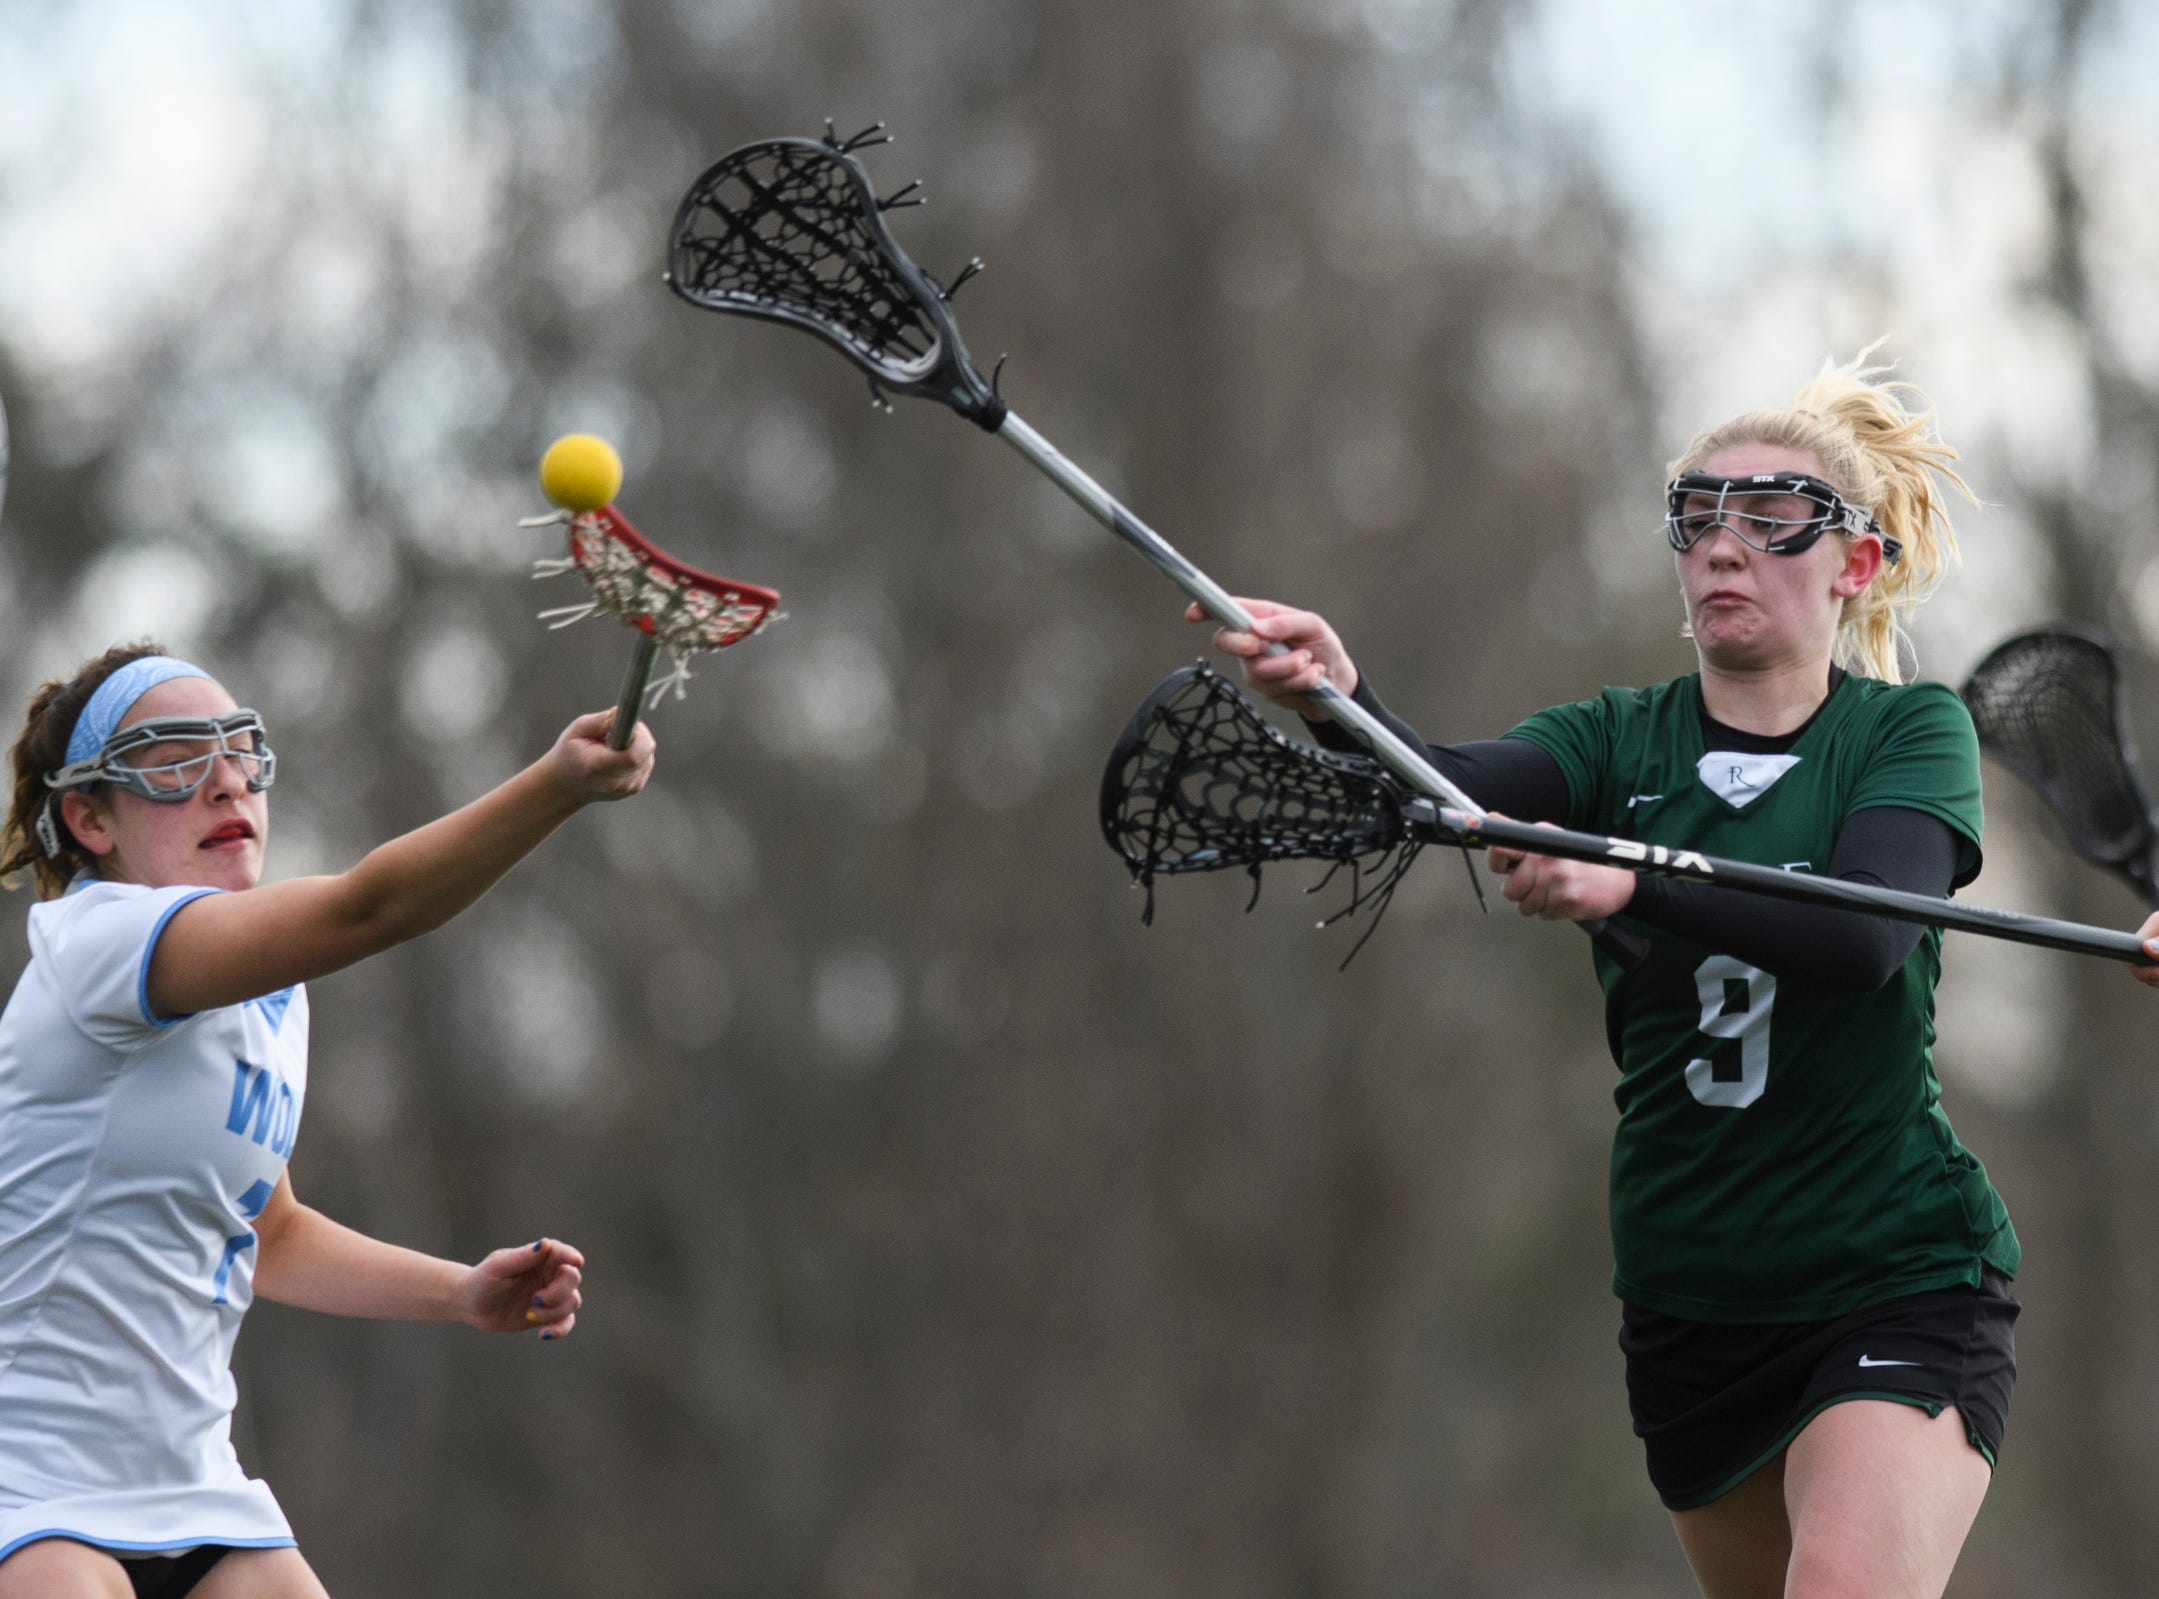 Rice's Alex Dostie (9) shoots the ball during the girls lacrosse game between the Rice Green Knights and the South Burlington Wolves at South Burlington High School on Tuesday afternoon April 16, 2019 in South Burlington, Vermont.